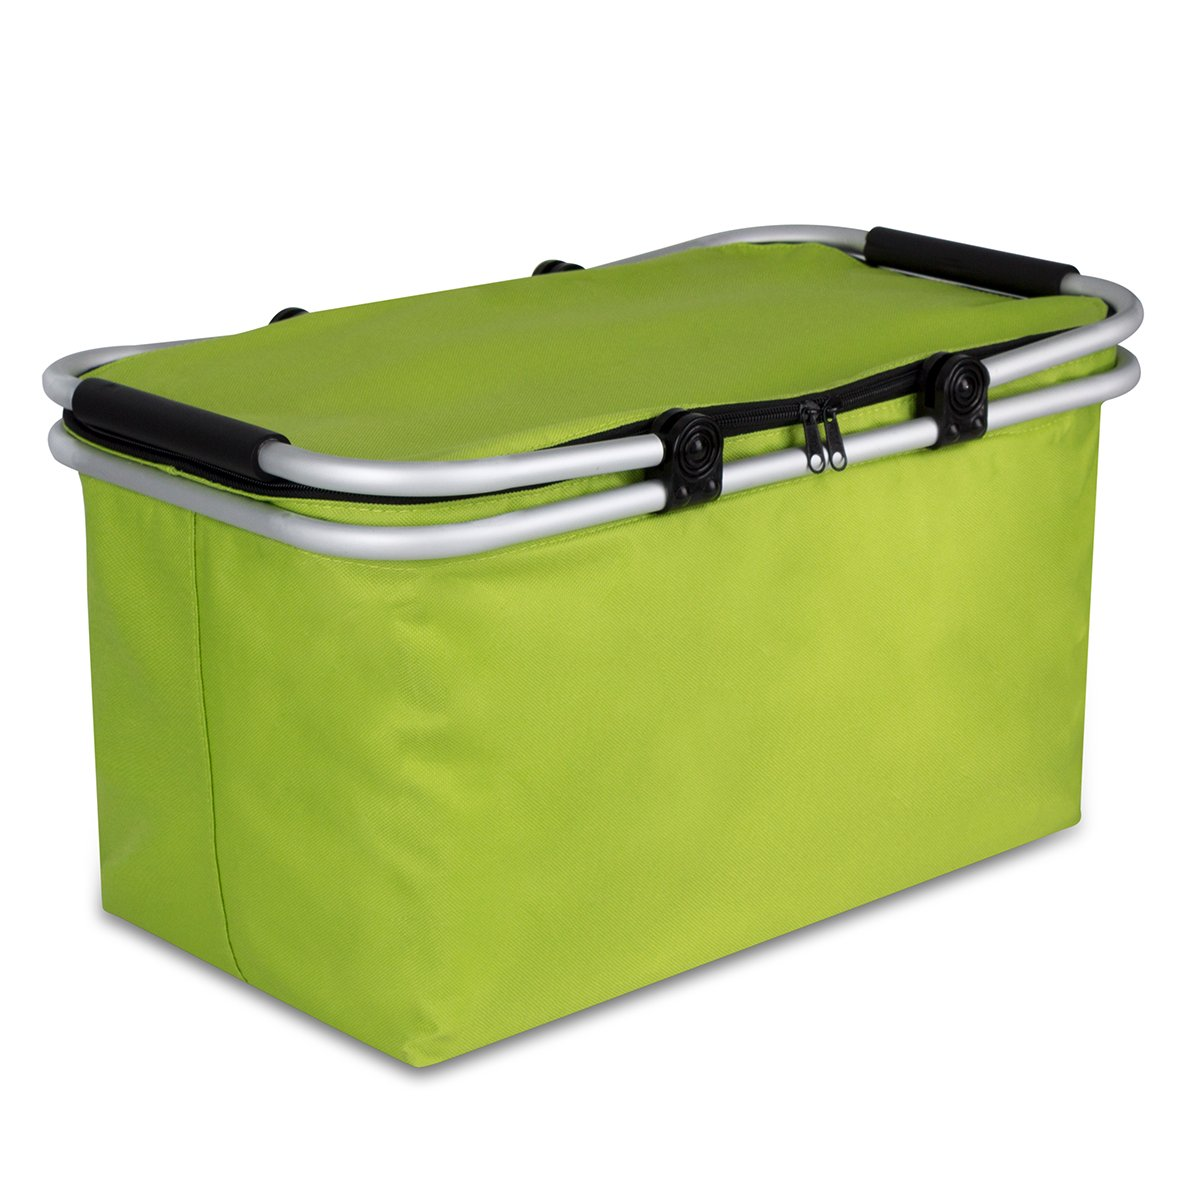 WISHPOOL Oxford Cloth Insulated Lunch Bag Reusable Collapsible Cooler Tote Box for Picnic Hiking (Green)